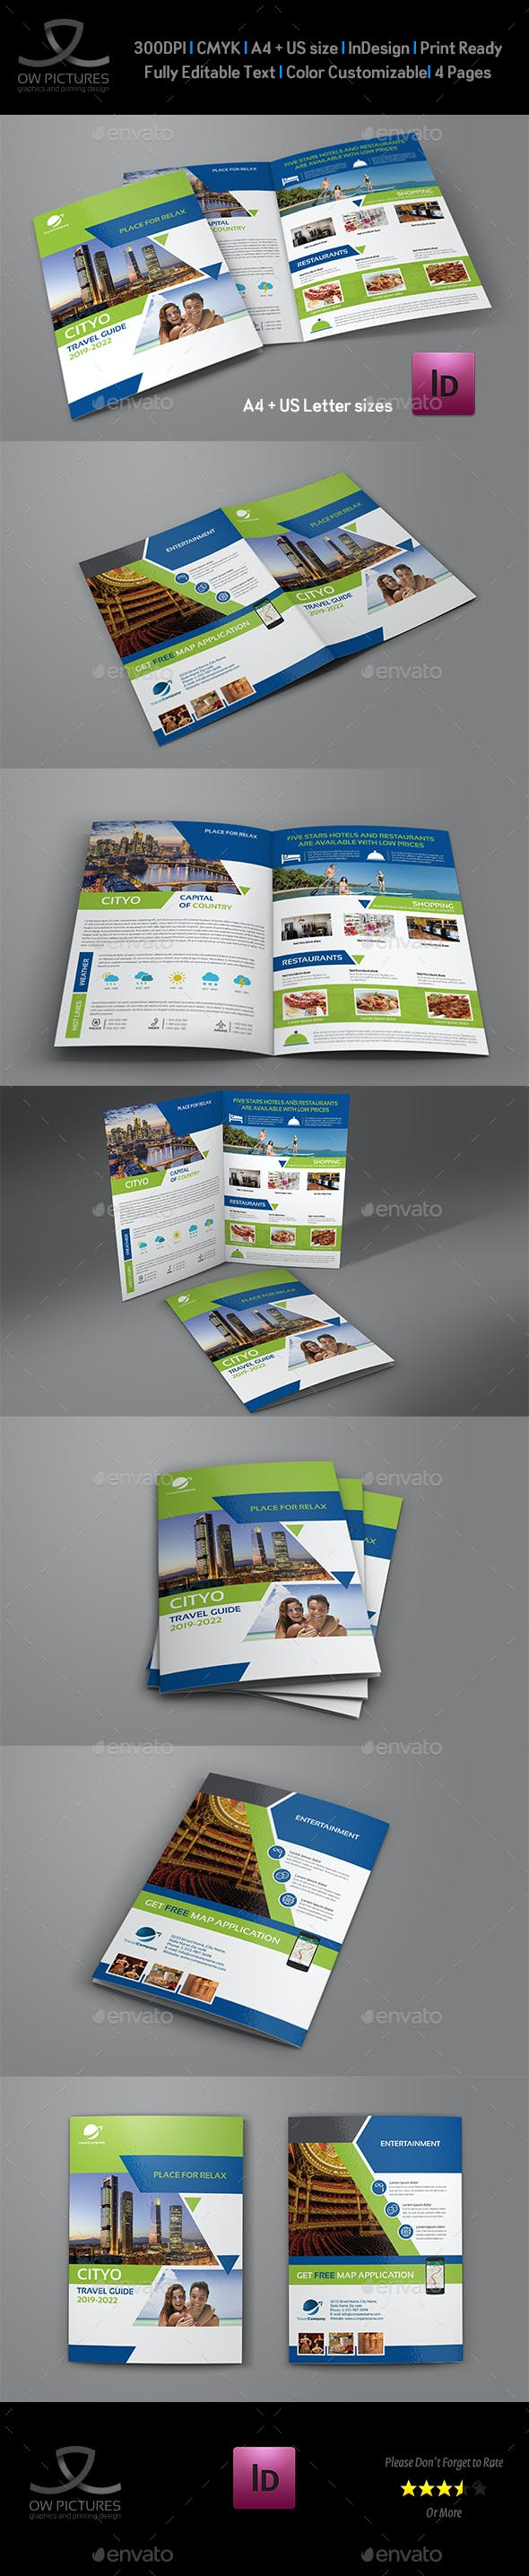 Travel Guide Bi-Fold Brochure Template by OWPictures